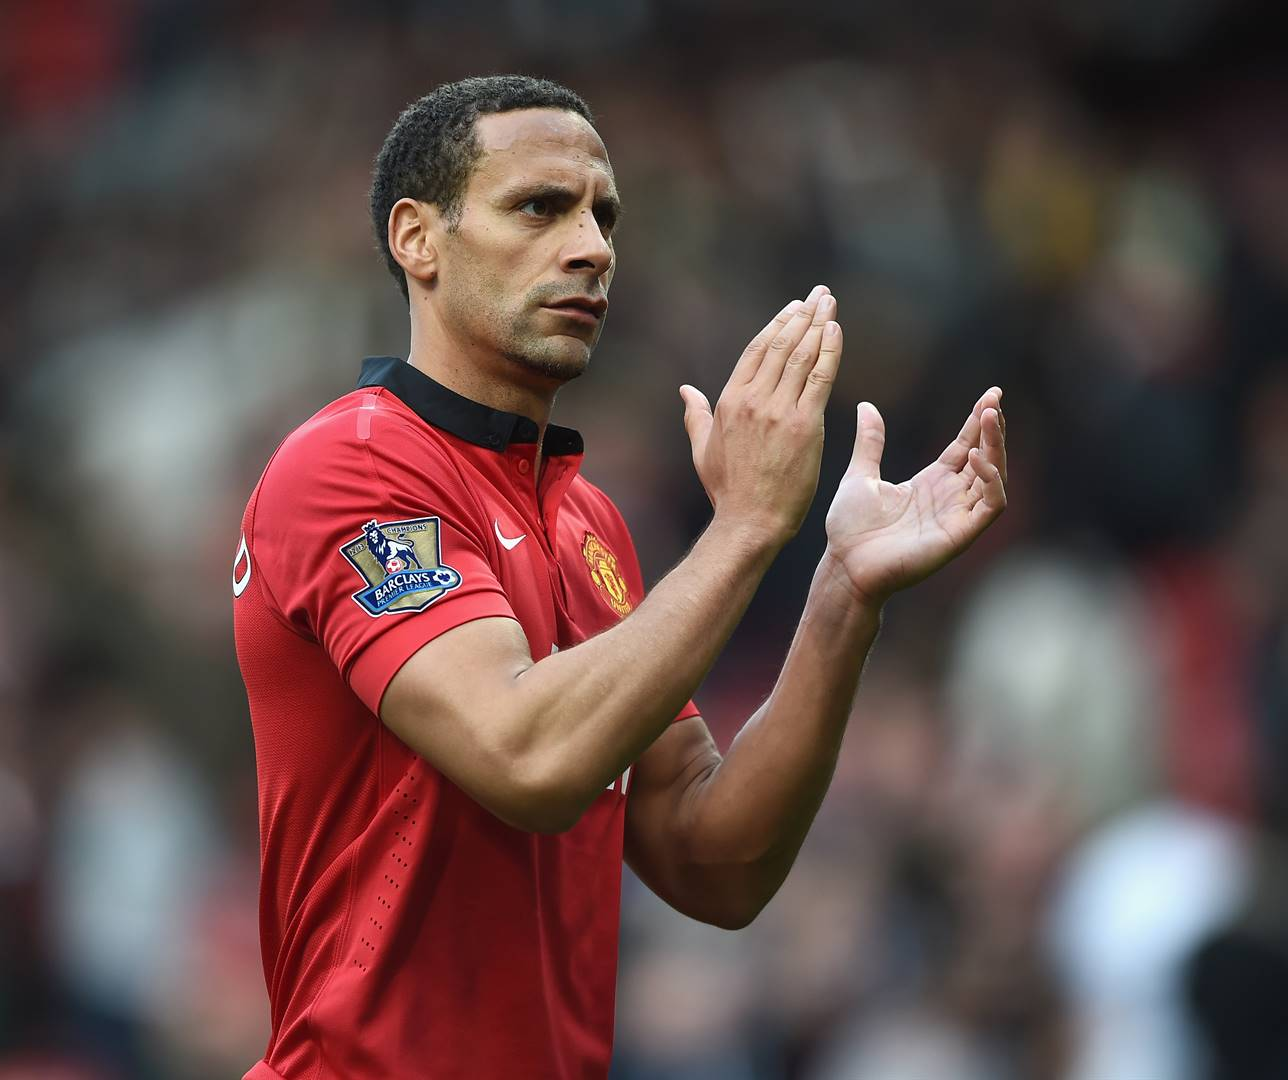 Man United legend Rio Ferdinand. Picture: Laurence Griffiths / Getty Images